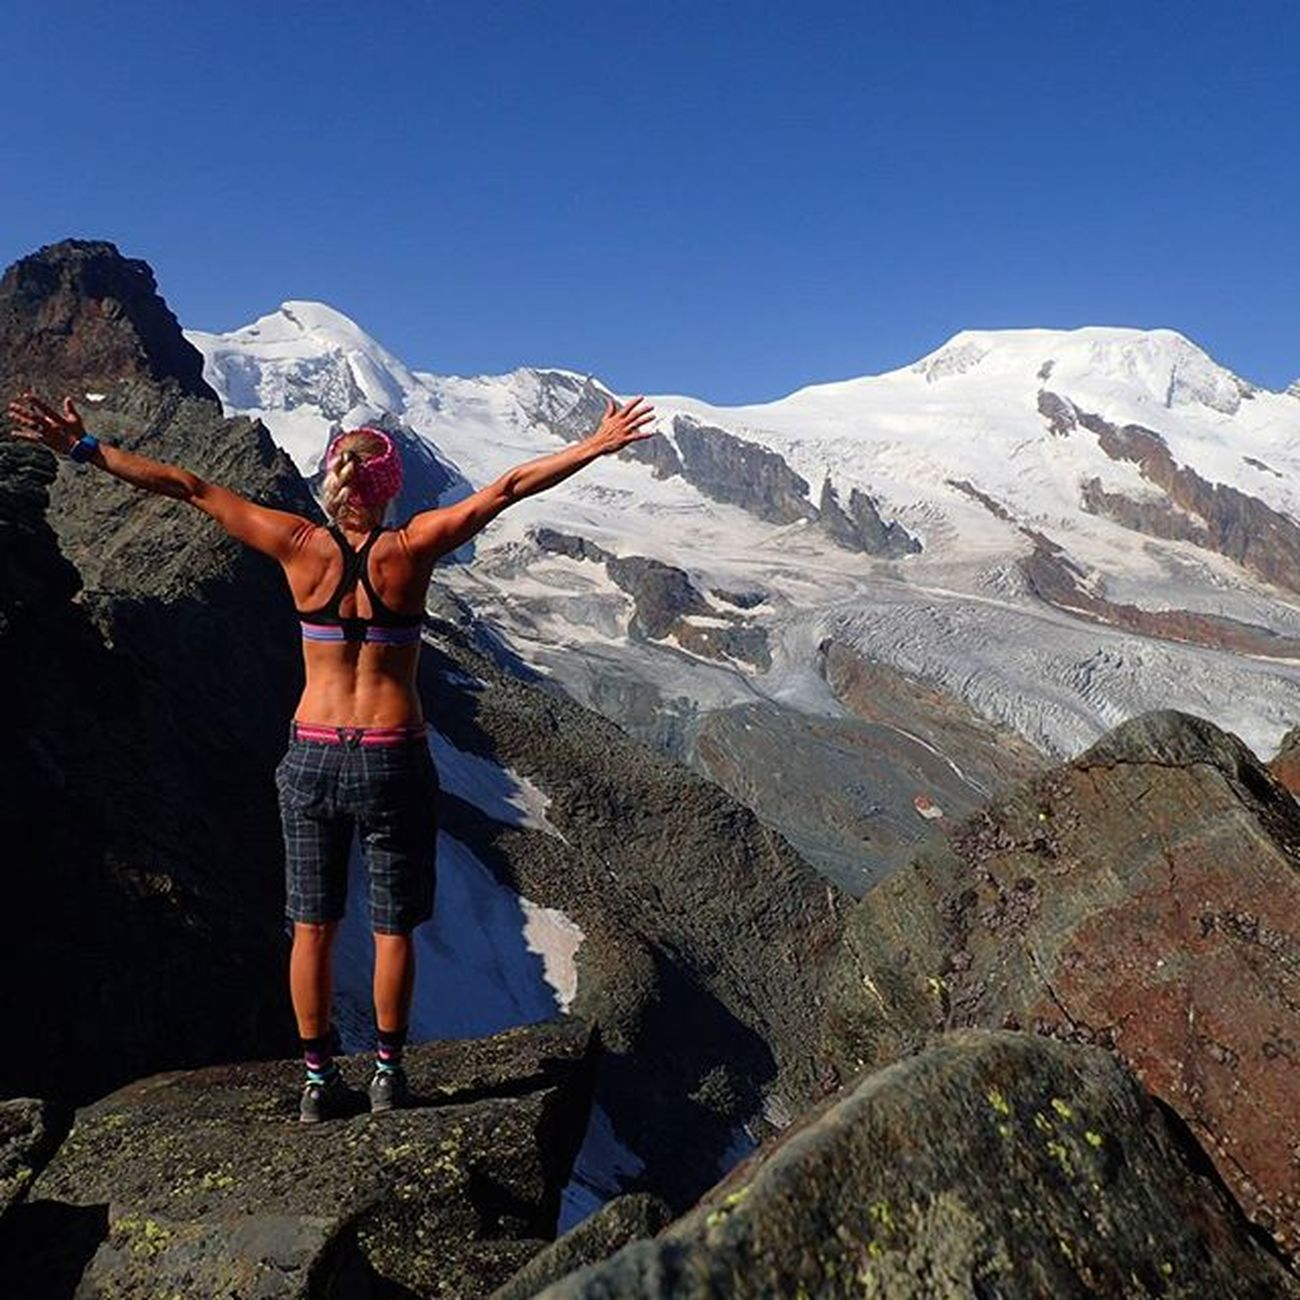 Mittaghorn Swissalps Switzerland Saasfee Allalin ViaFerrata Wu_switzerland Montagne_my_life Mountaingirls Alpinebabes Radgirlslife Maxjoylife Ig_switzerland Igswitzerland Columbia Salewa Whataview Sportaddict Loves_natura Loves_mountains Landscape_captures Ilovehiking Freeasabird Onthetopoftheworld Keeponsmiling lifeisgood ig_neverstopexploring mountainworld ocistimogore ON thE toP oF MiTTaghoRn 3143m▶muCH beTTer uP heRe▶inCrediBLe vieW ⭐⭐🌟🌟✨✨⭐⭐🌟🌟✨✨